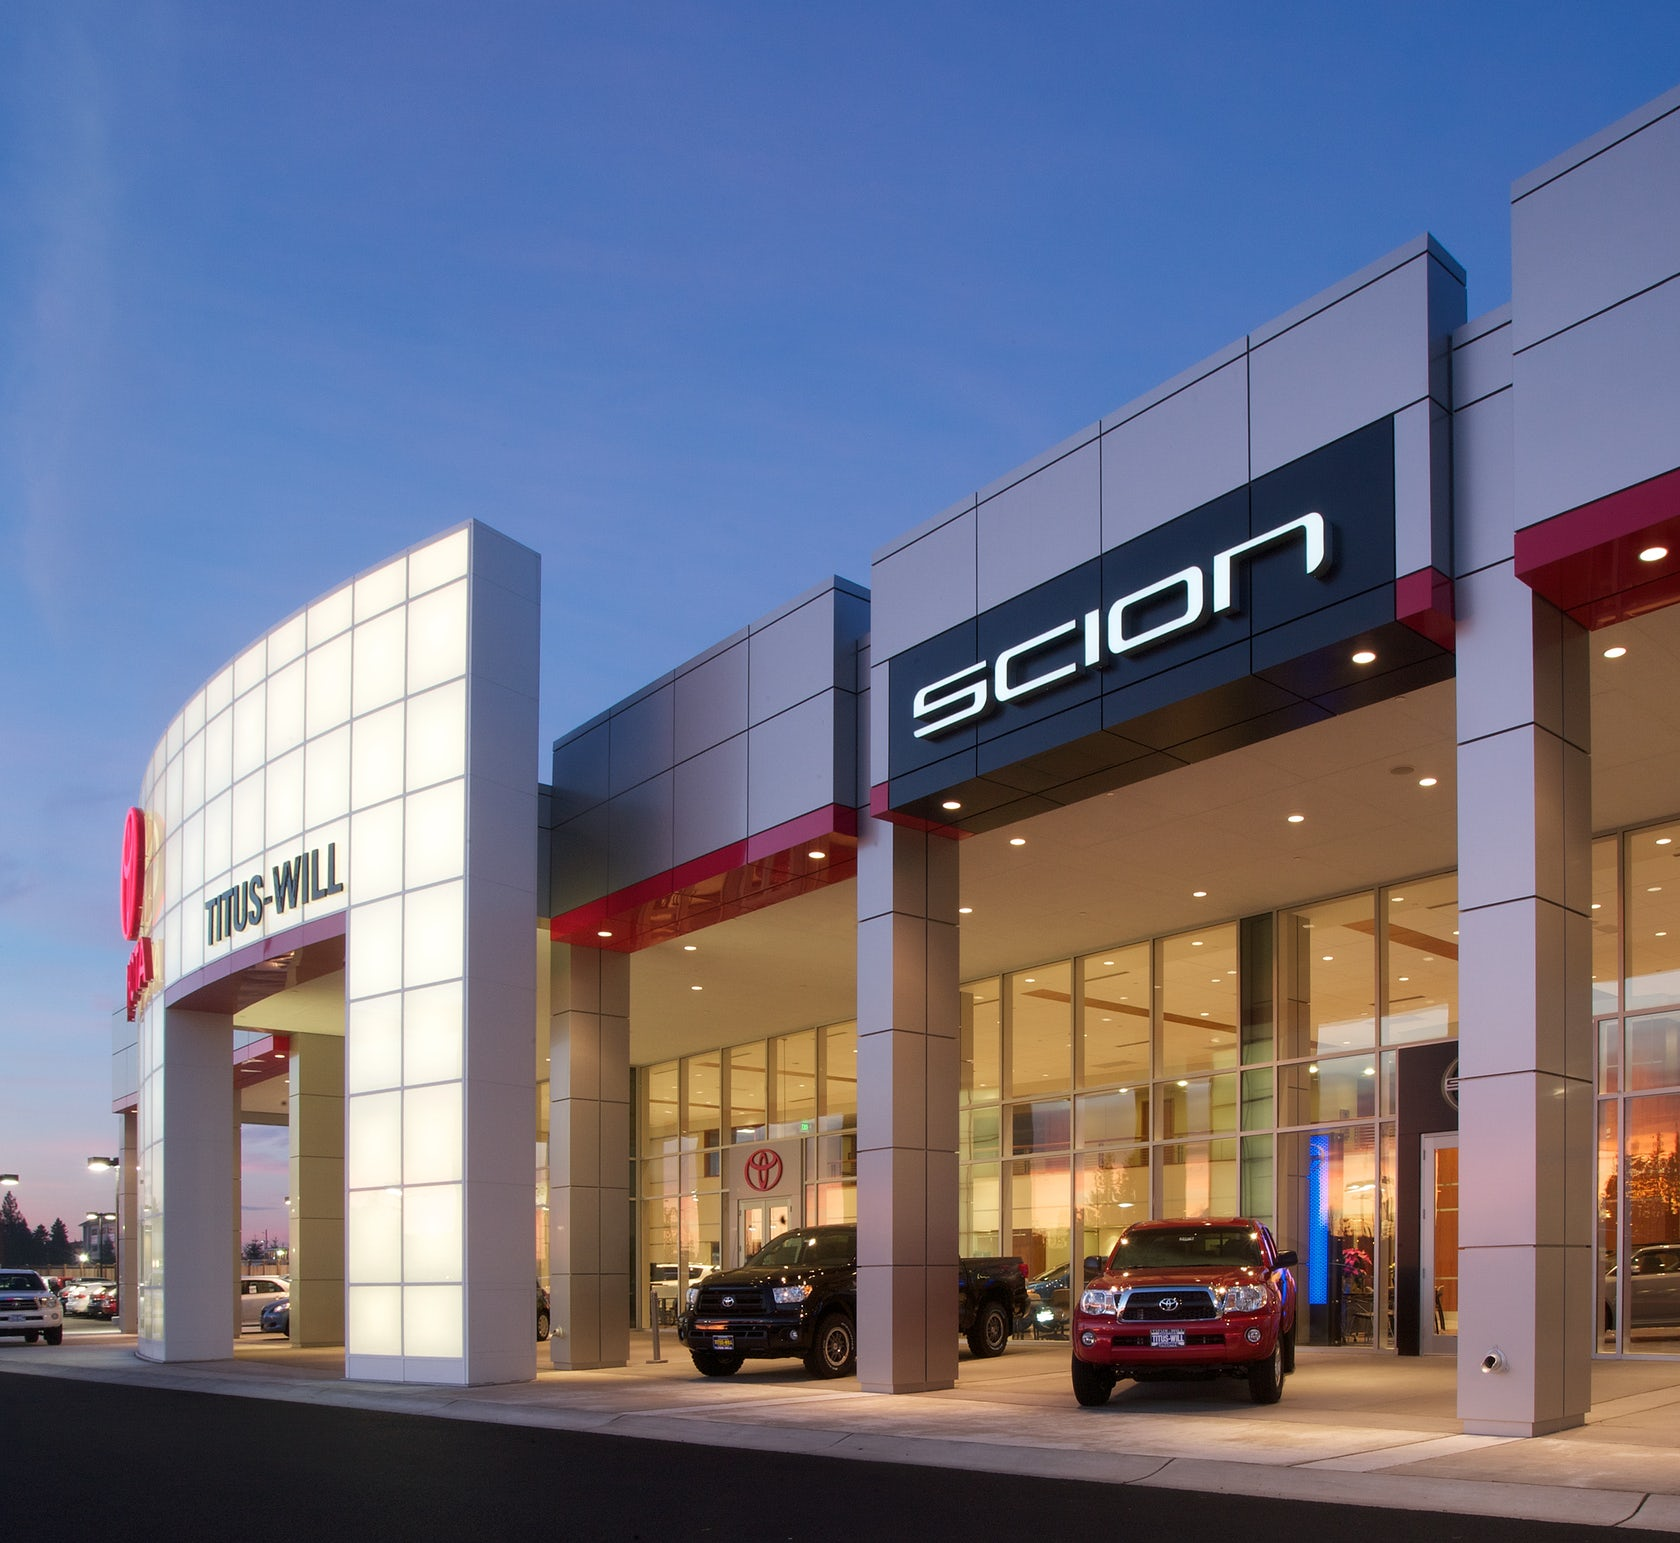 Ford Dealership Building Designs: TITUS-WILL TOYOTA